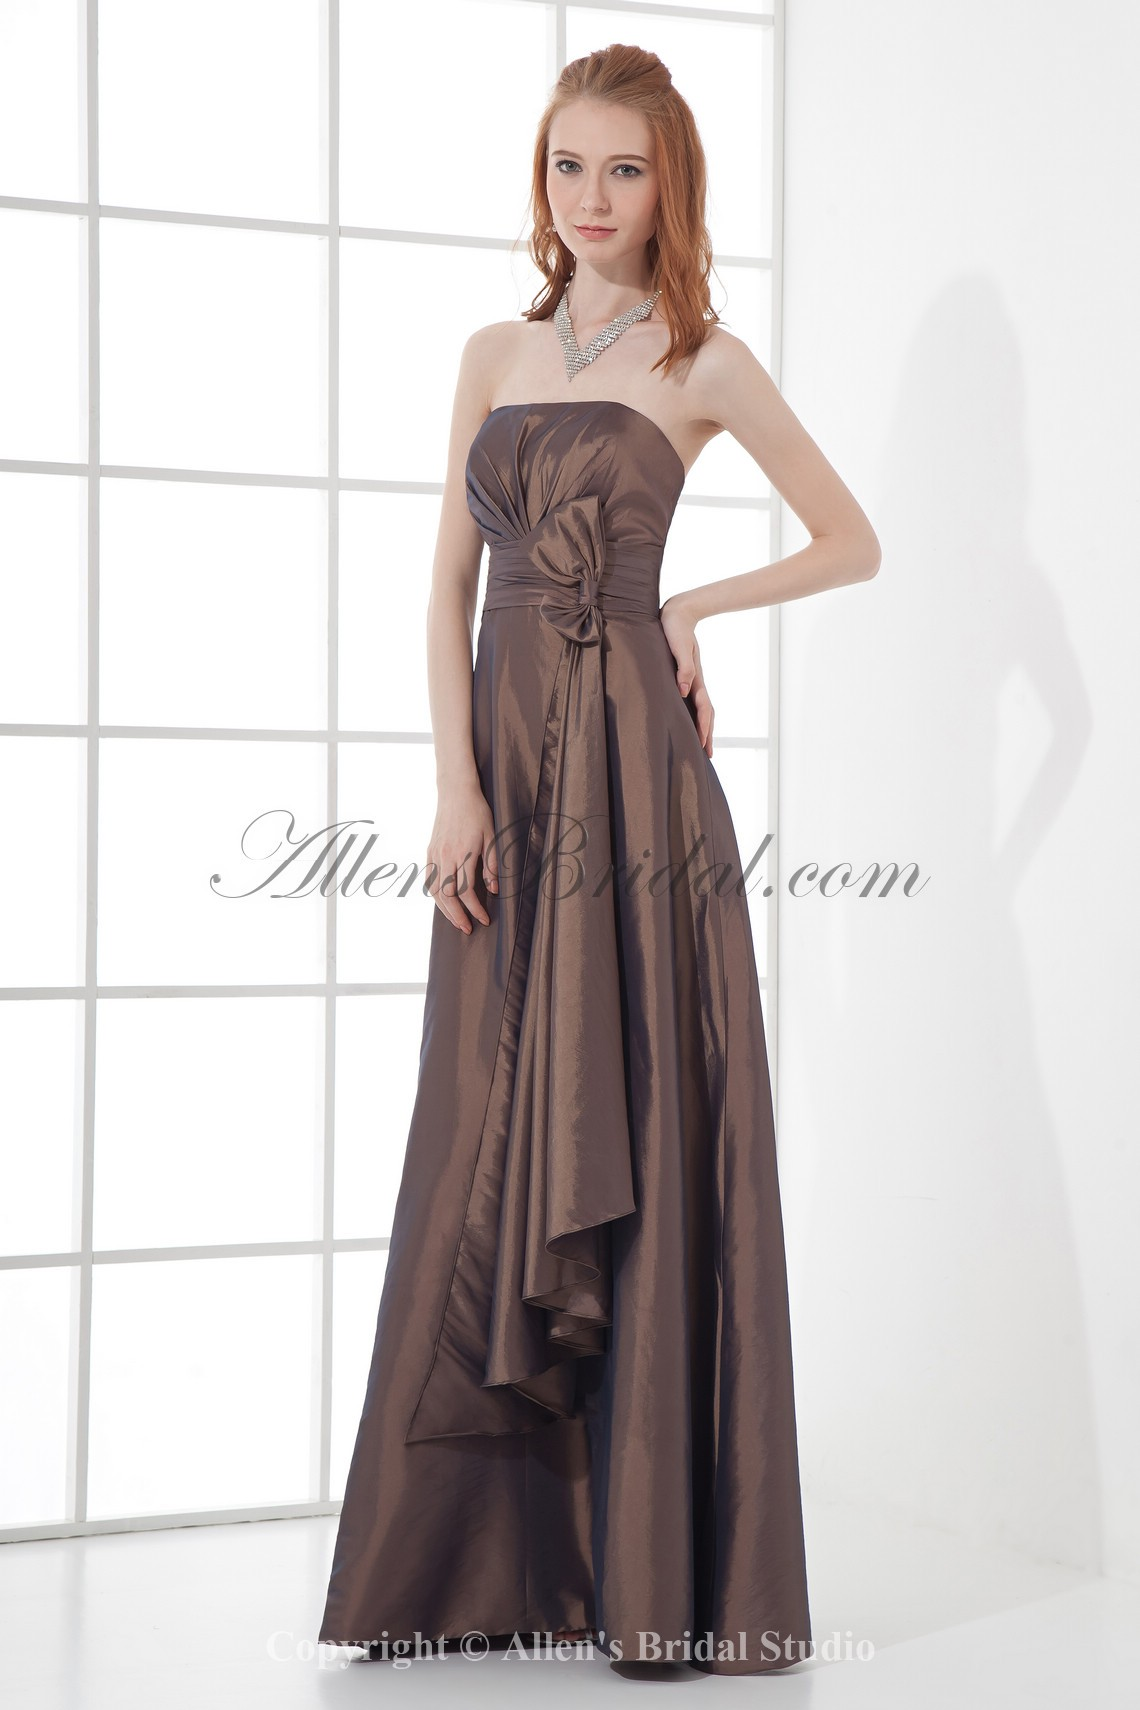 /56-442/taffeta-strapless-a-line-floor-length-ruched-prom-dress.jpg